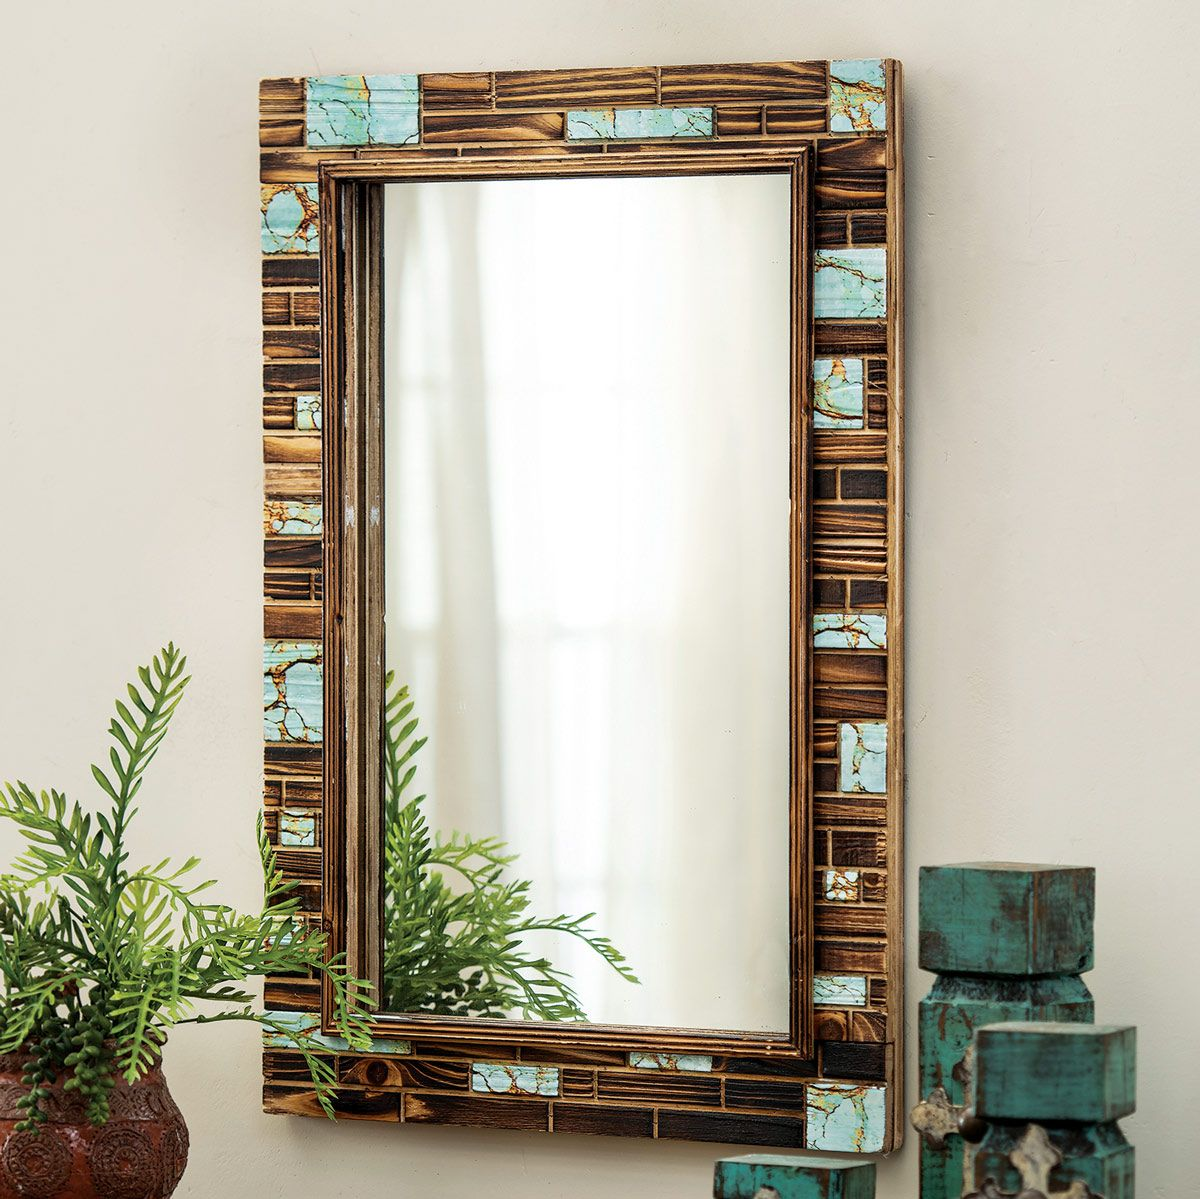 Turquoise Canyon Wall Mirror